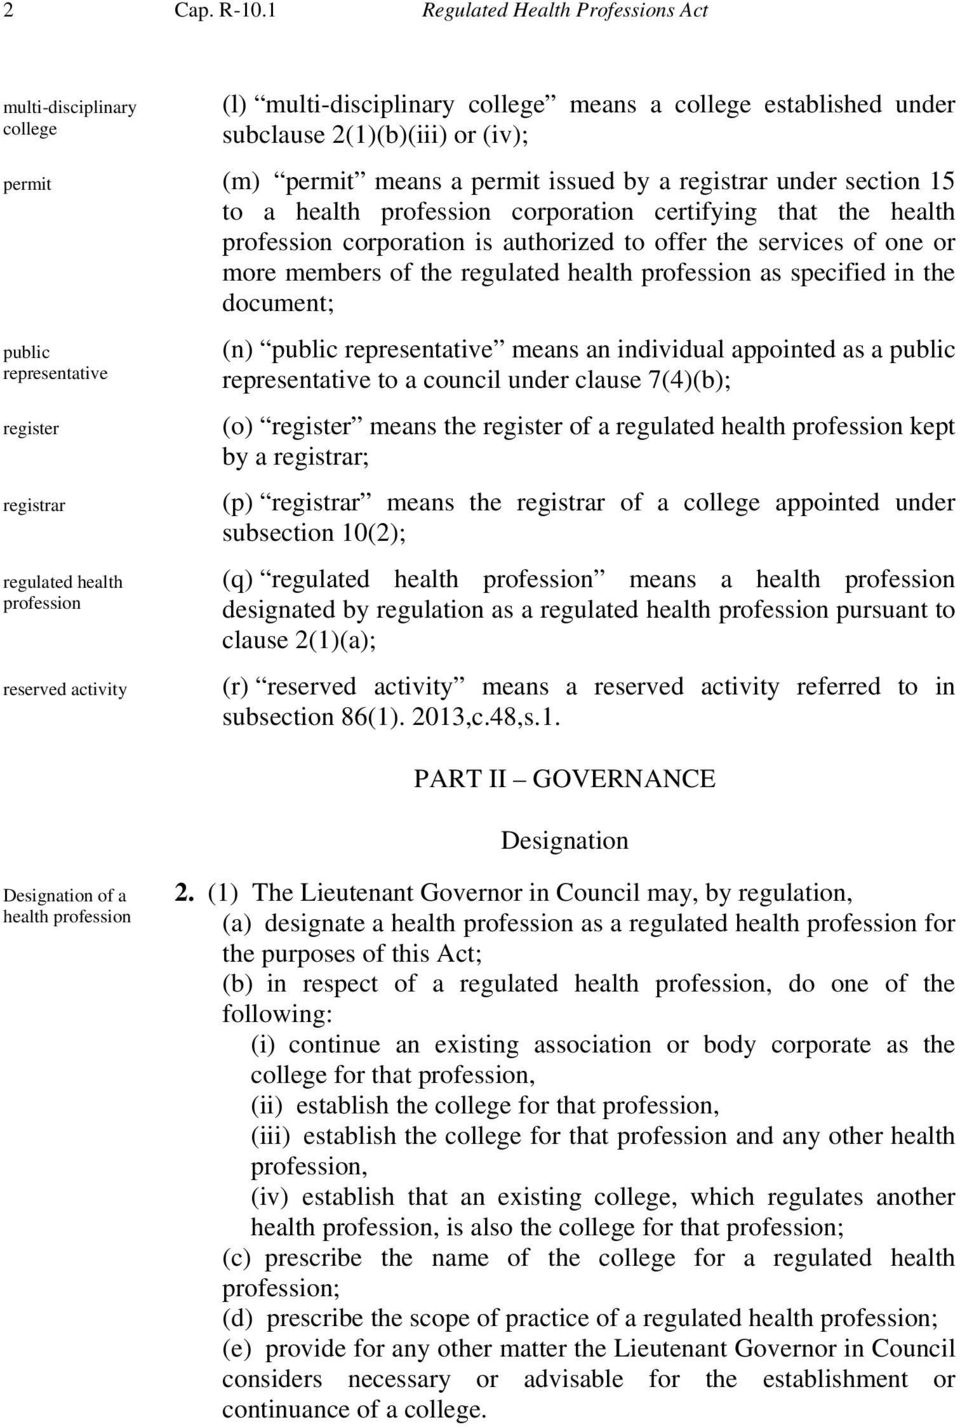 college established under subclause 2(1)(b)(iii) or (iv); (m) permit means a permit issued by a registrar under section 15 to a health profession corporation certifying that the health profession